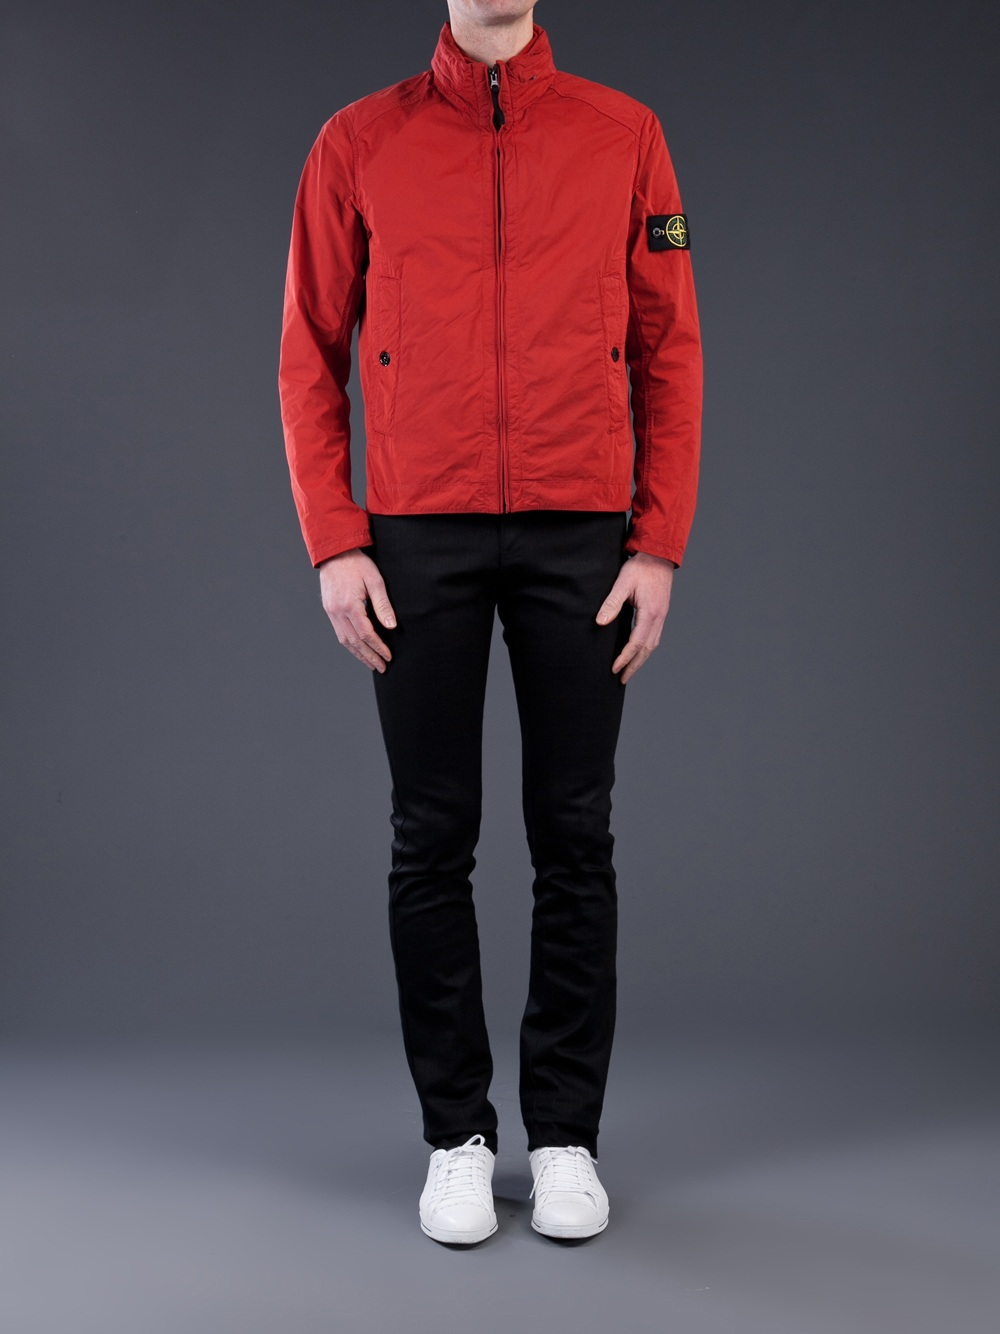 Stone island Lightweight Jacket in Red for Men | Lyst